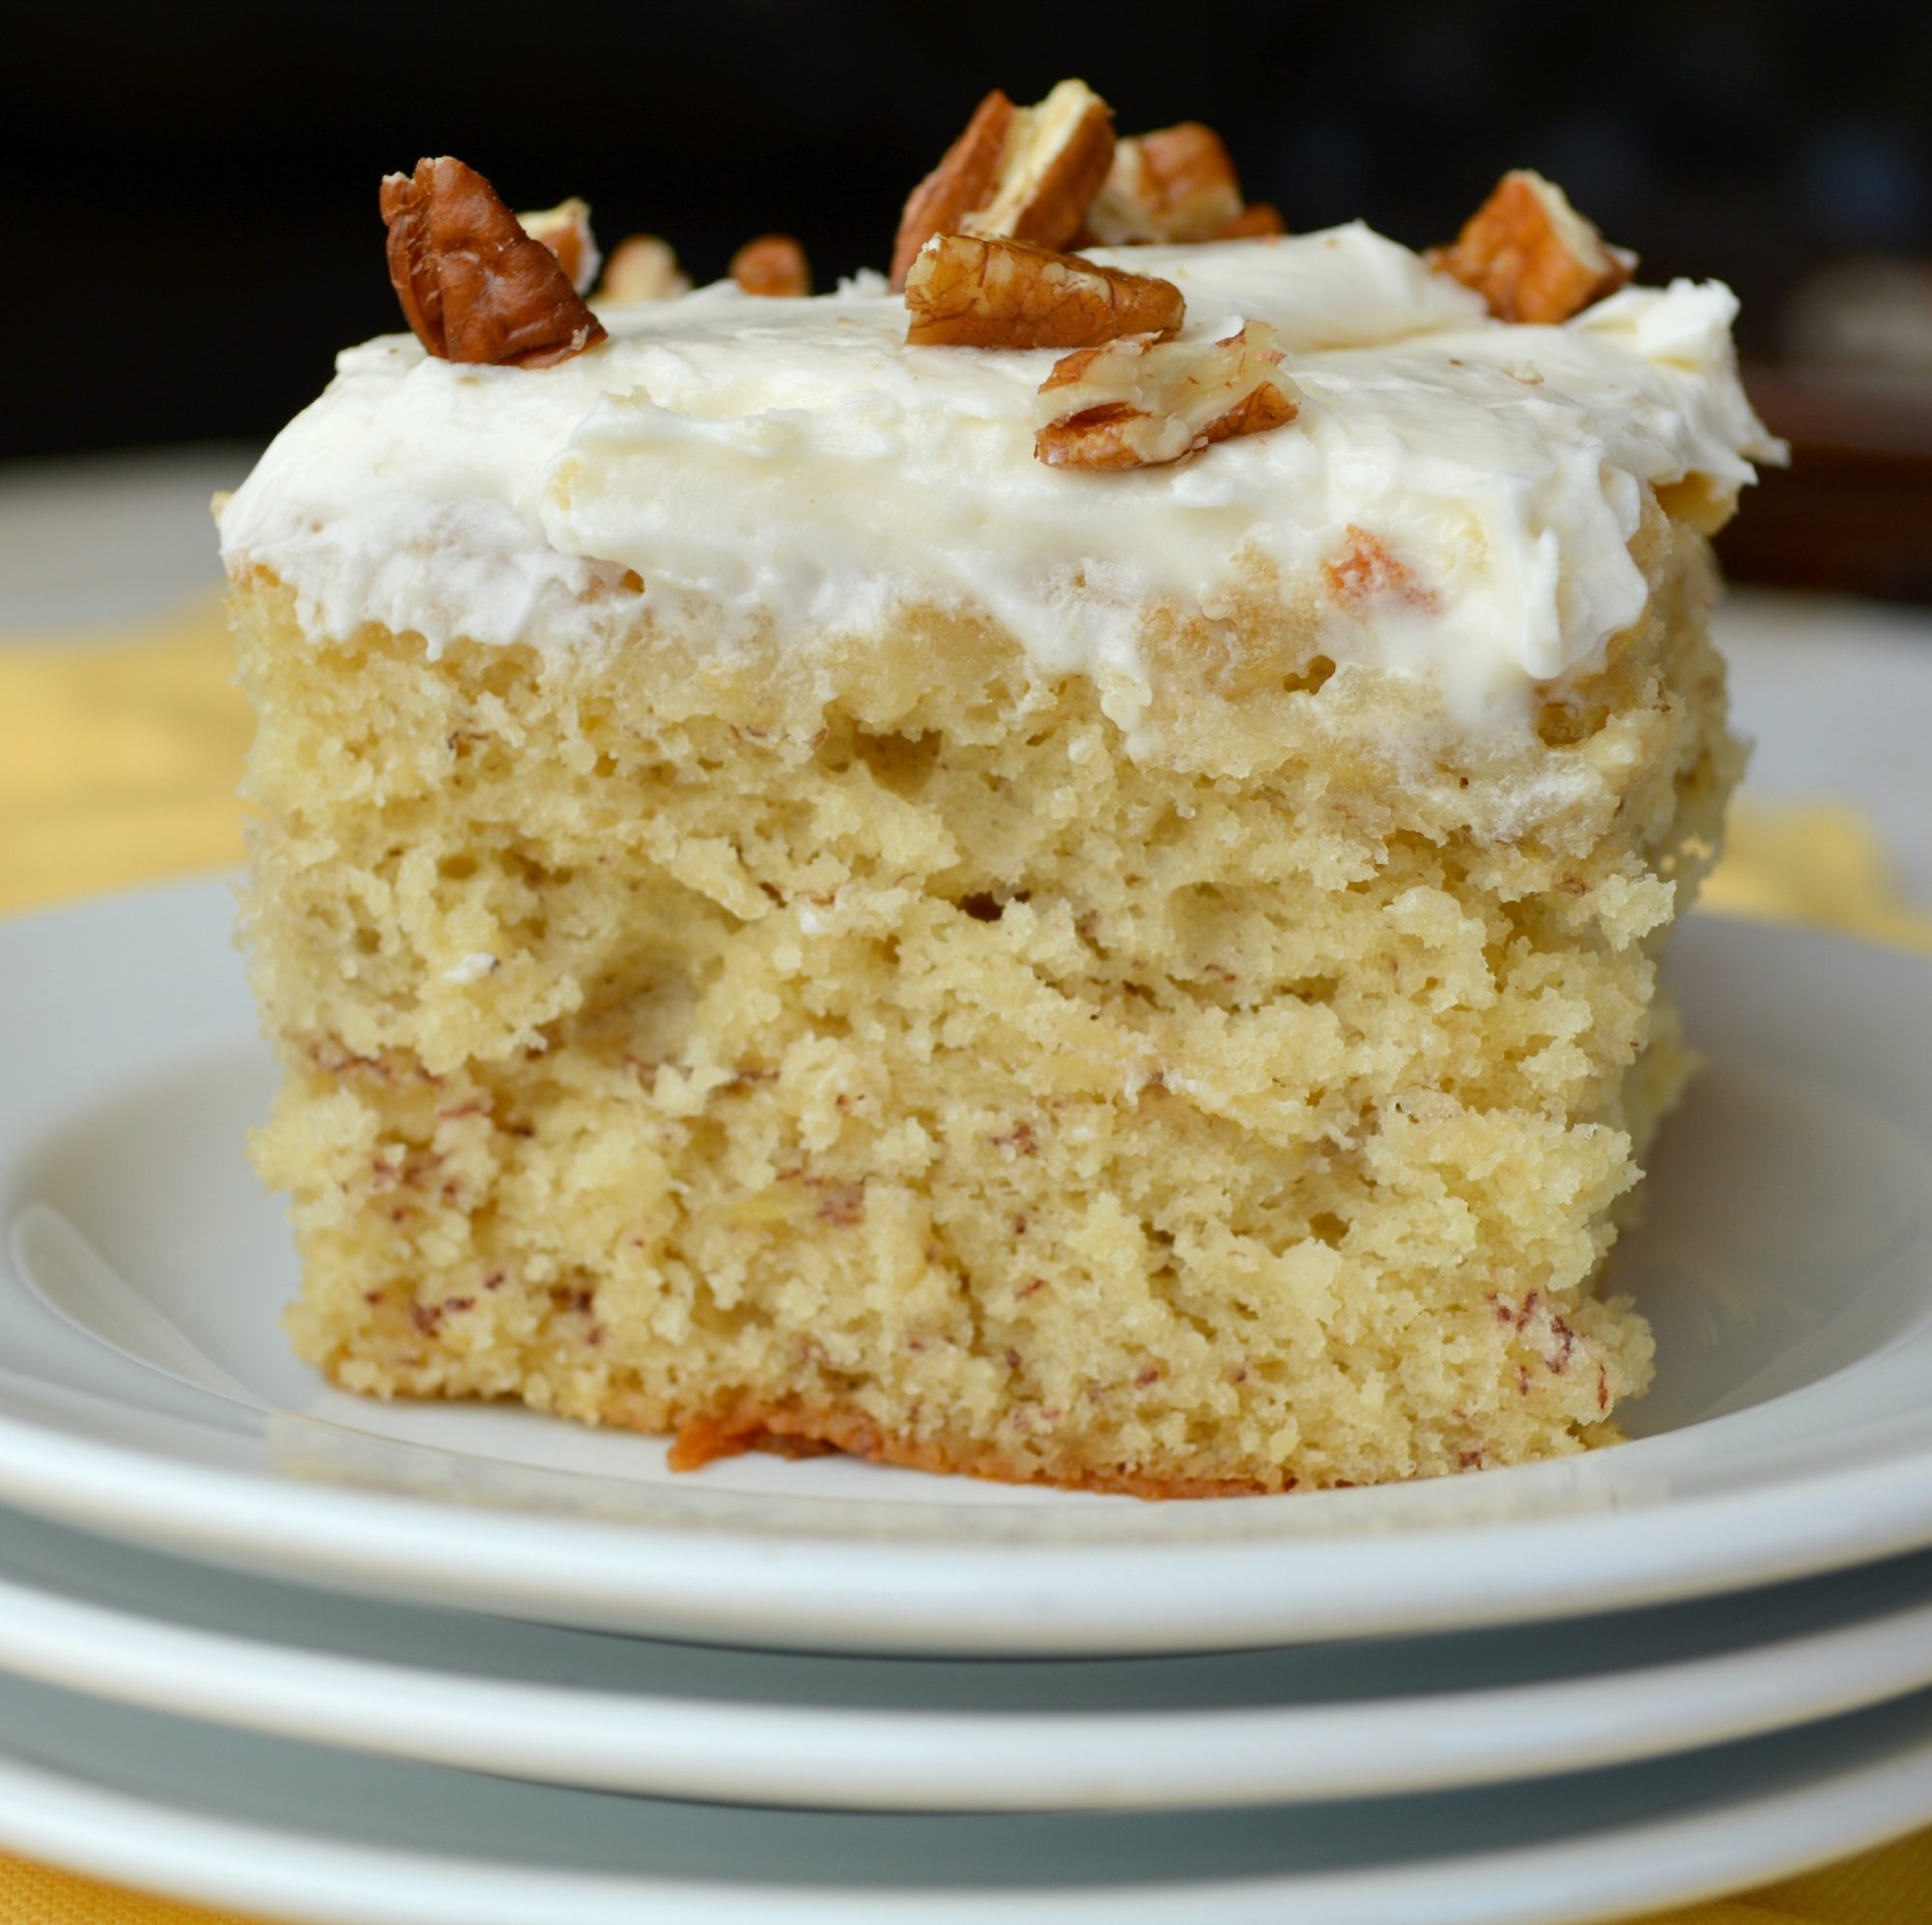 banana cake Eggless banana cake recipe with video and step by step photos – a one bowl cake recipe of delicious banana cake which is eggless as well as vegan a quick and easy recipe which gives light, soft and moist cake.